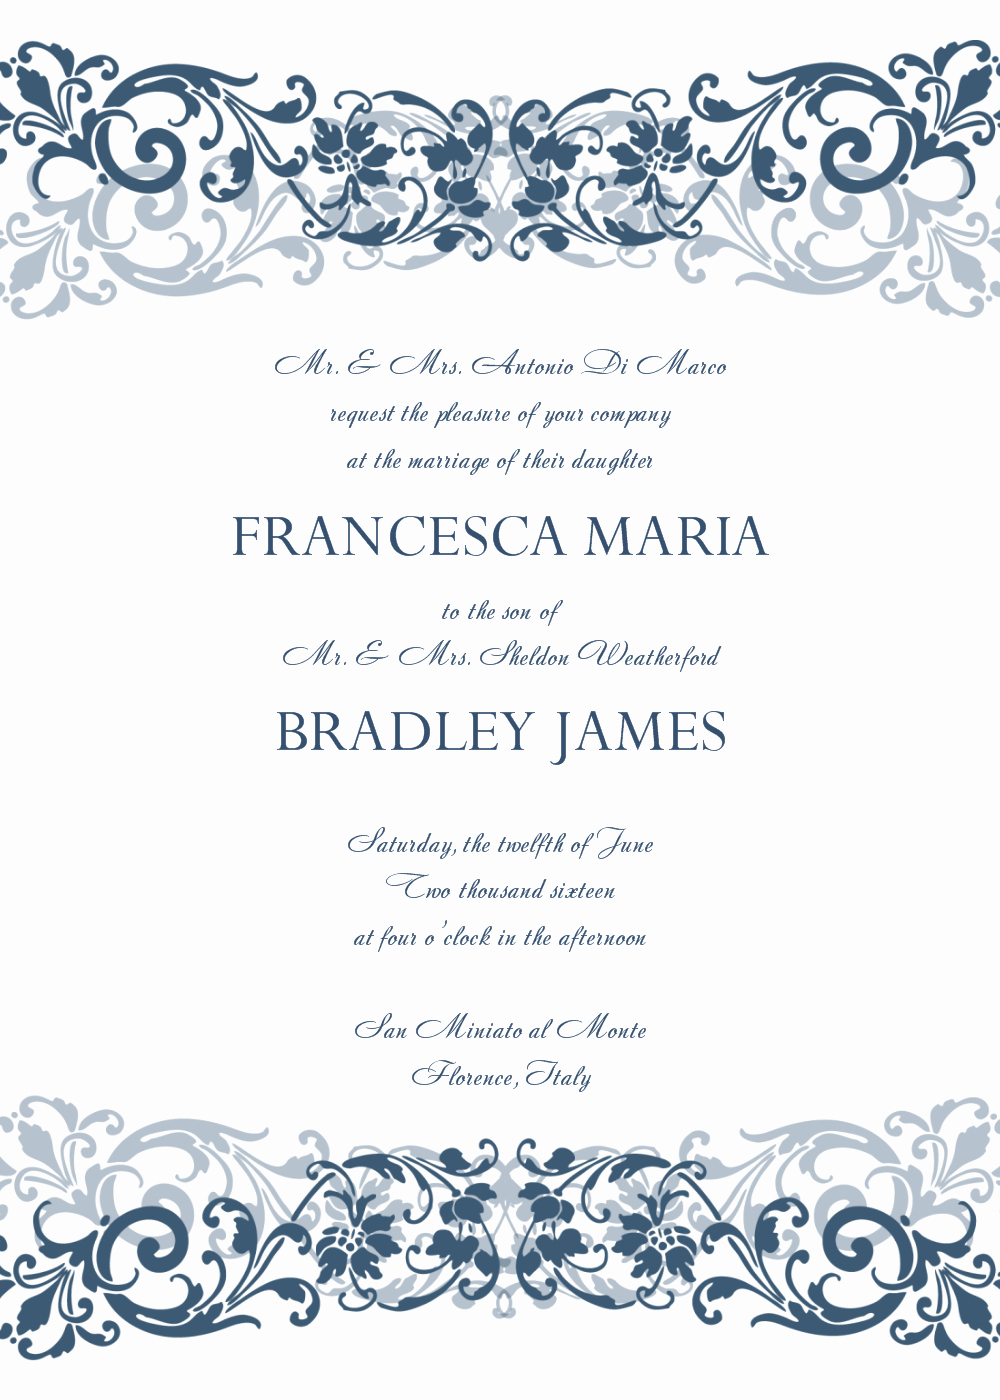 Wedding Invitations Template Free New 8 Free Wedding Invitation Templates Excel Pdf formats